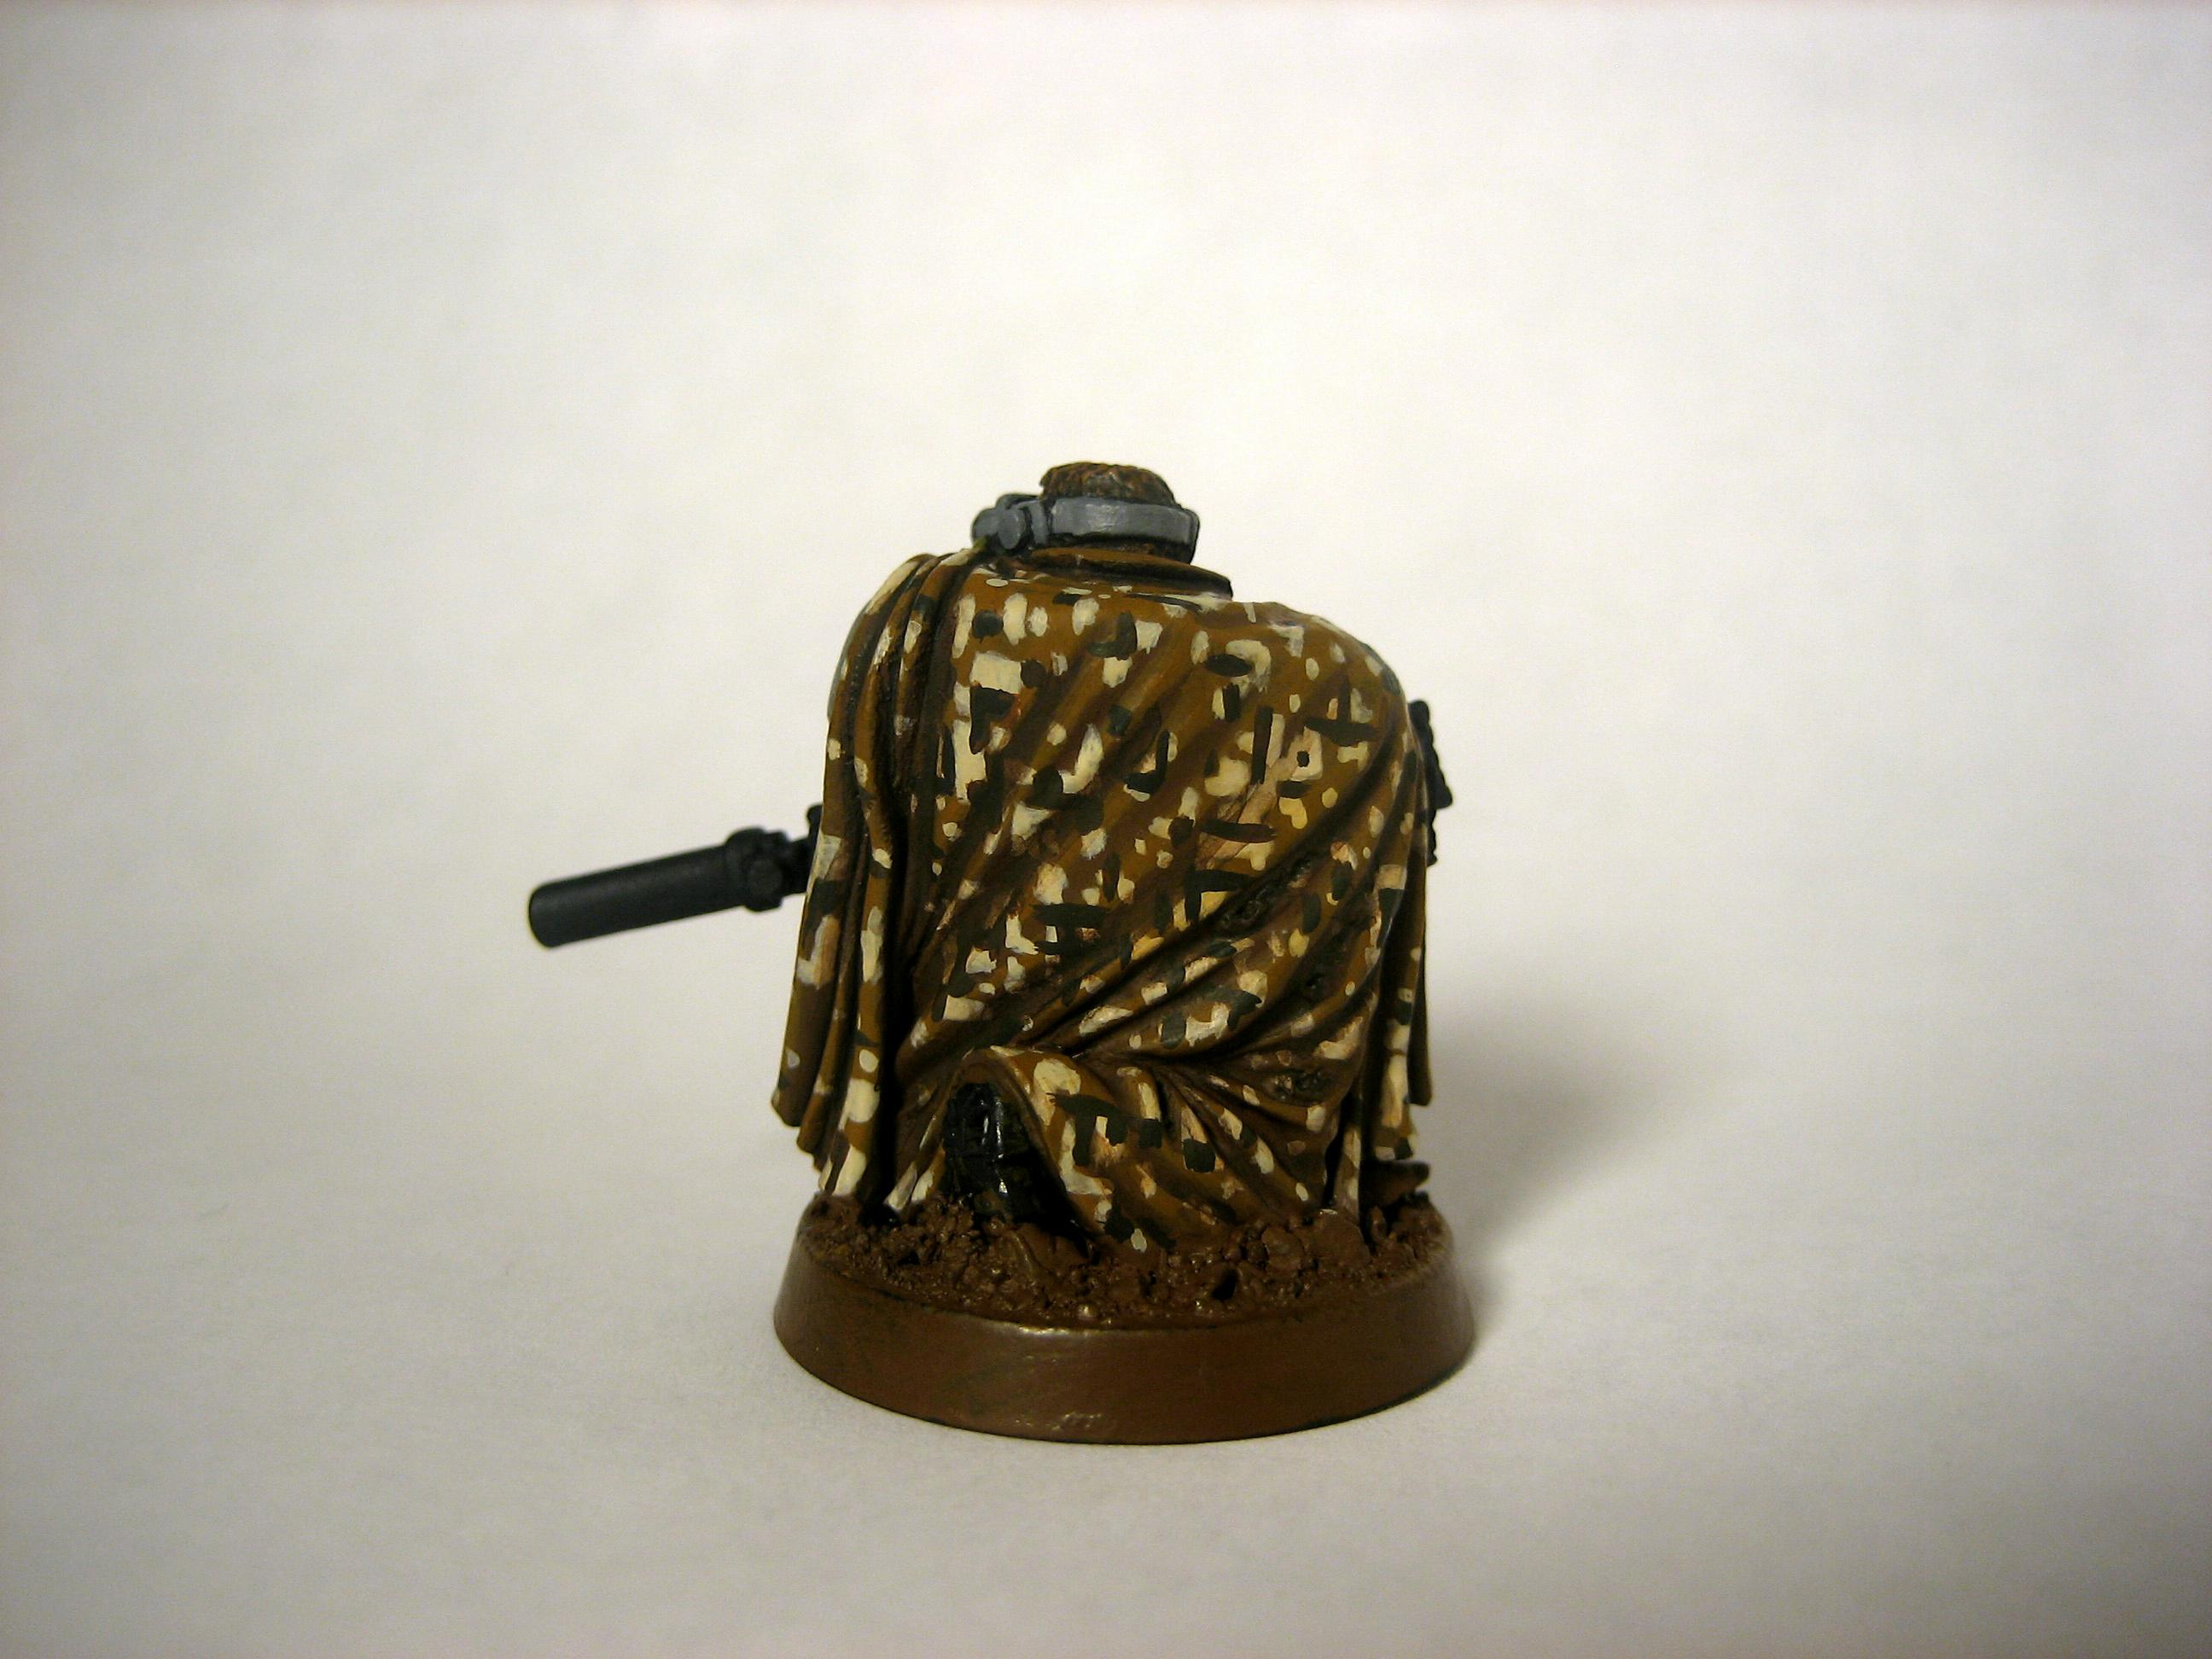 Camouflage, Scouts, Snipers, Space Marines, Warhammer 40,000